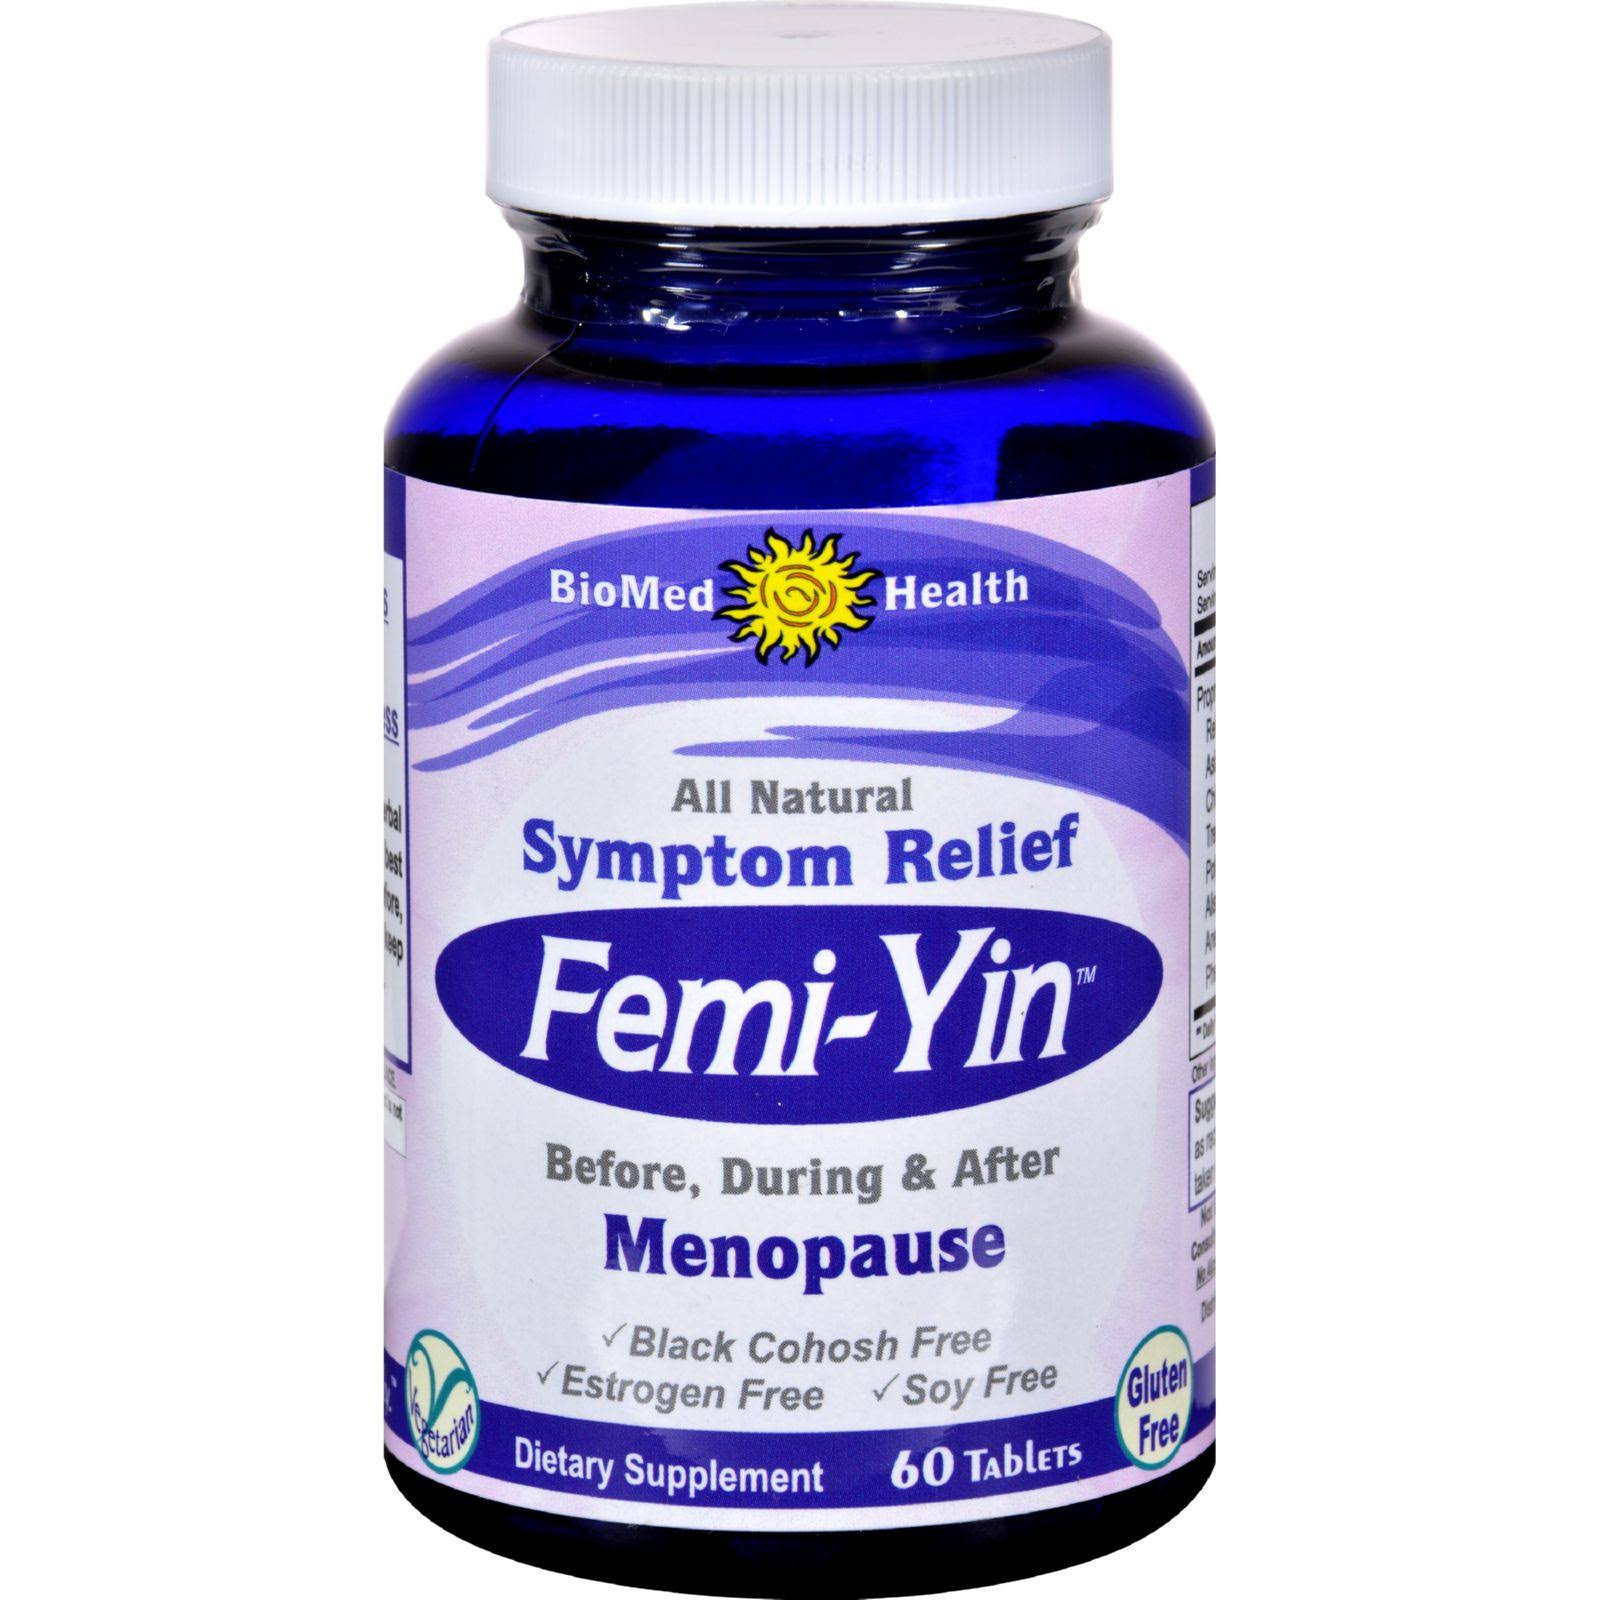 Biomed Health Femi-Yin Peri and Menopause Relief - 60 Tablets